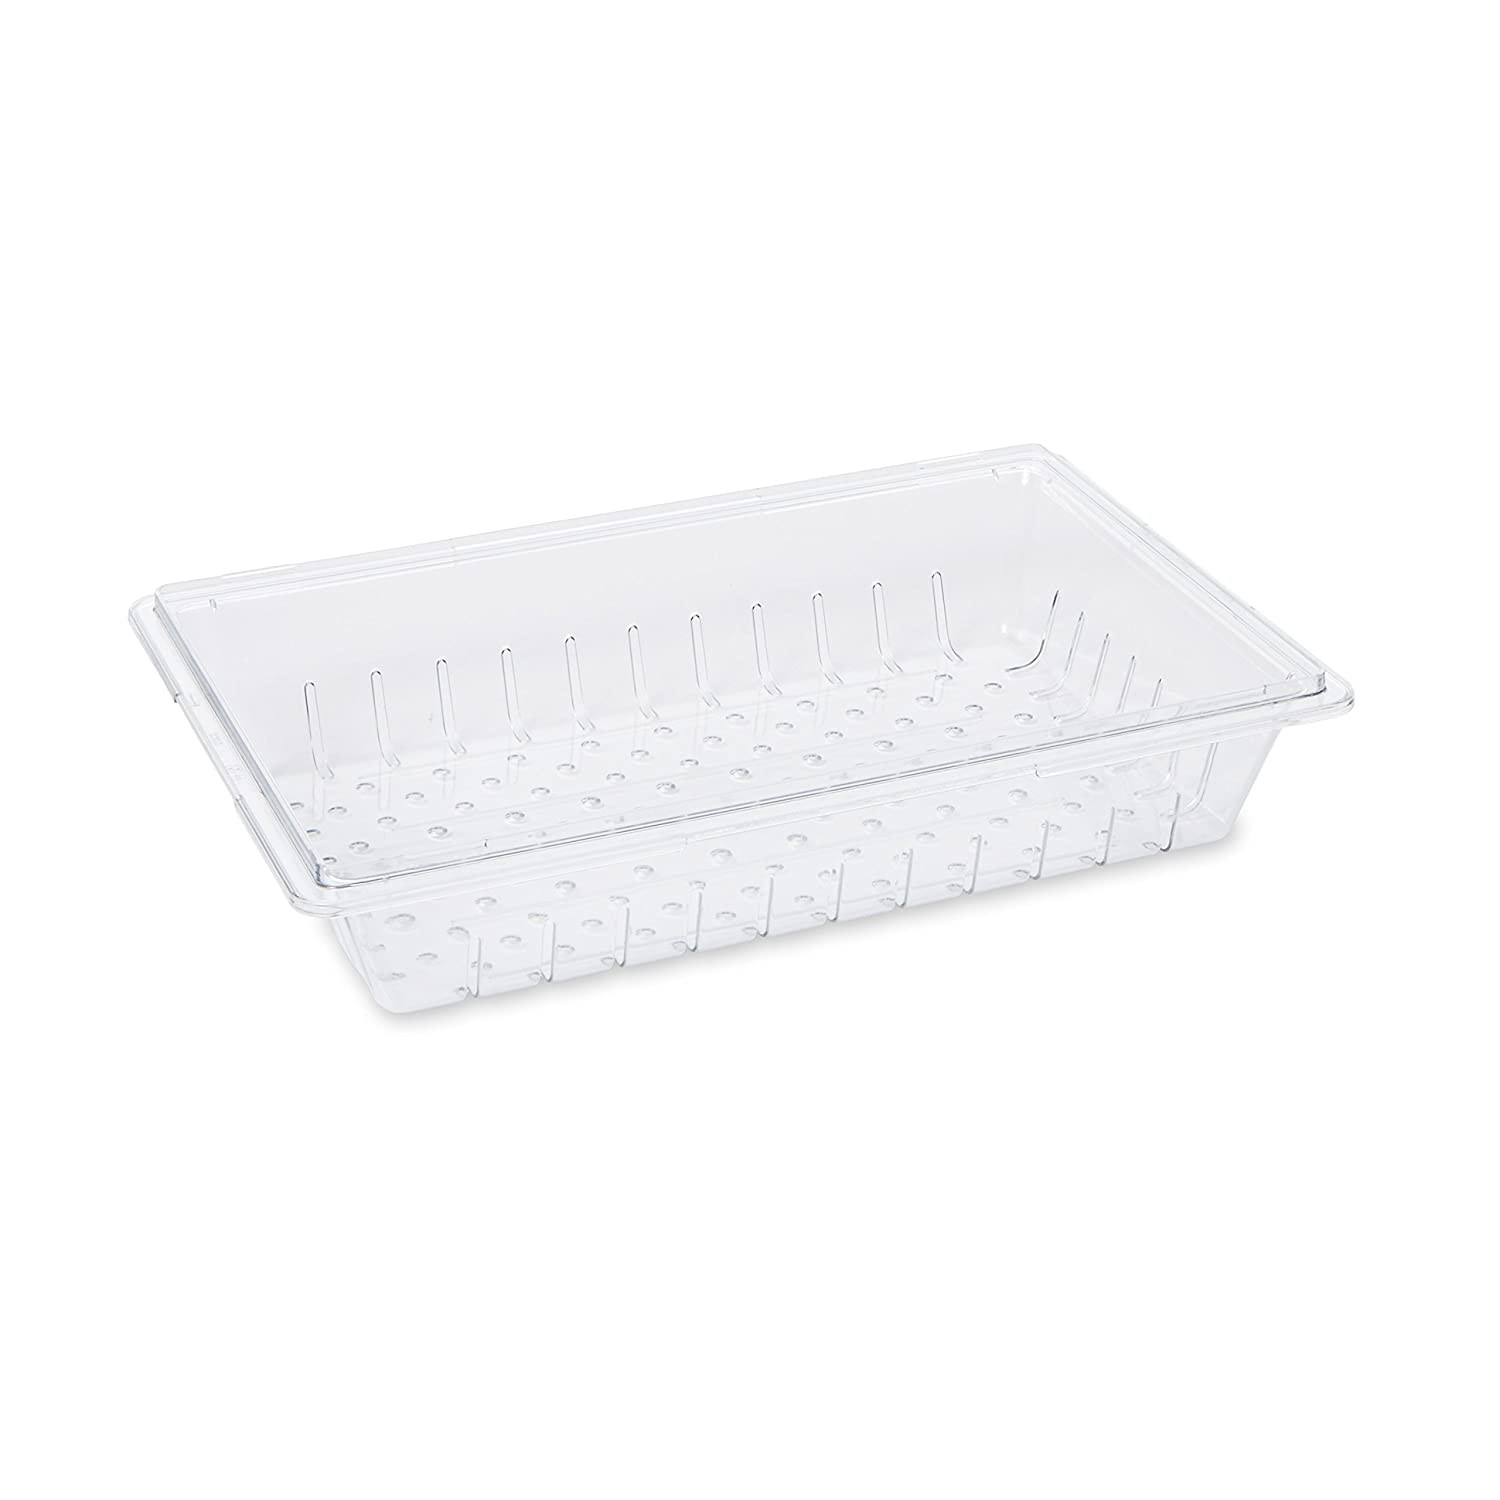 Rubbermaid Commercial Products Food Storage Box Drainage Colander for 8.5, 12.5, 16.5 and 21.5 Gallon Sizes, Clear (FG330300CLR)